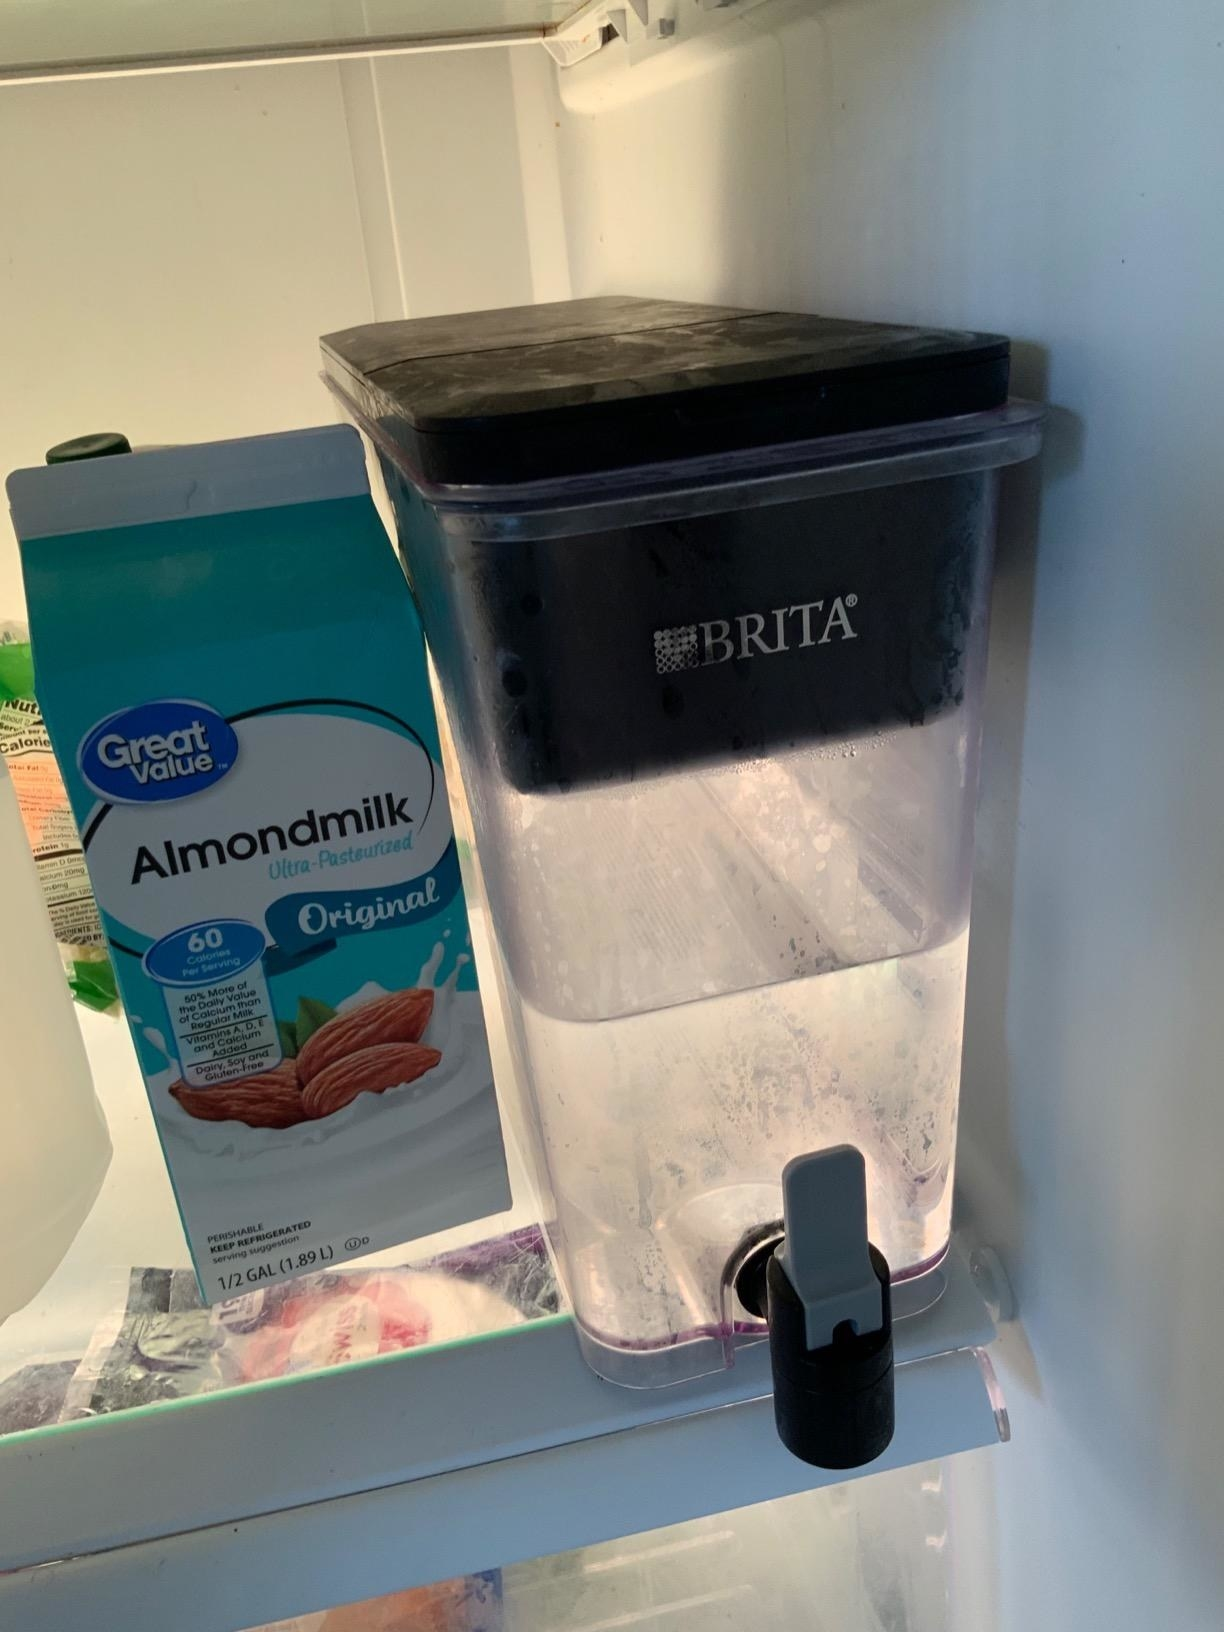 A rectangular clear plastic Brita water filter with black top and spout